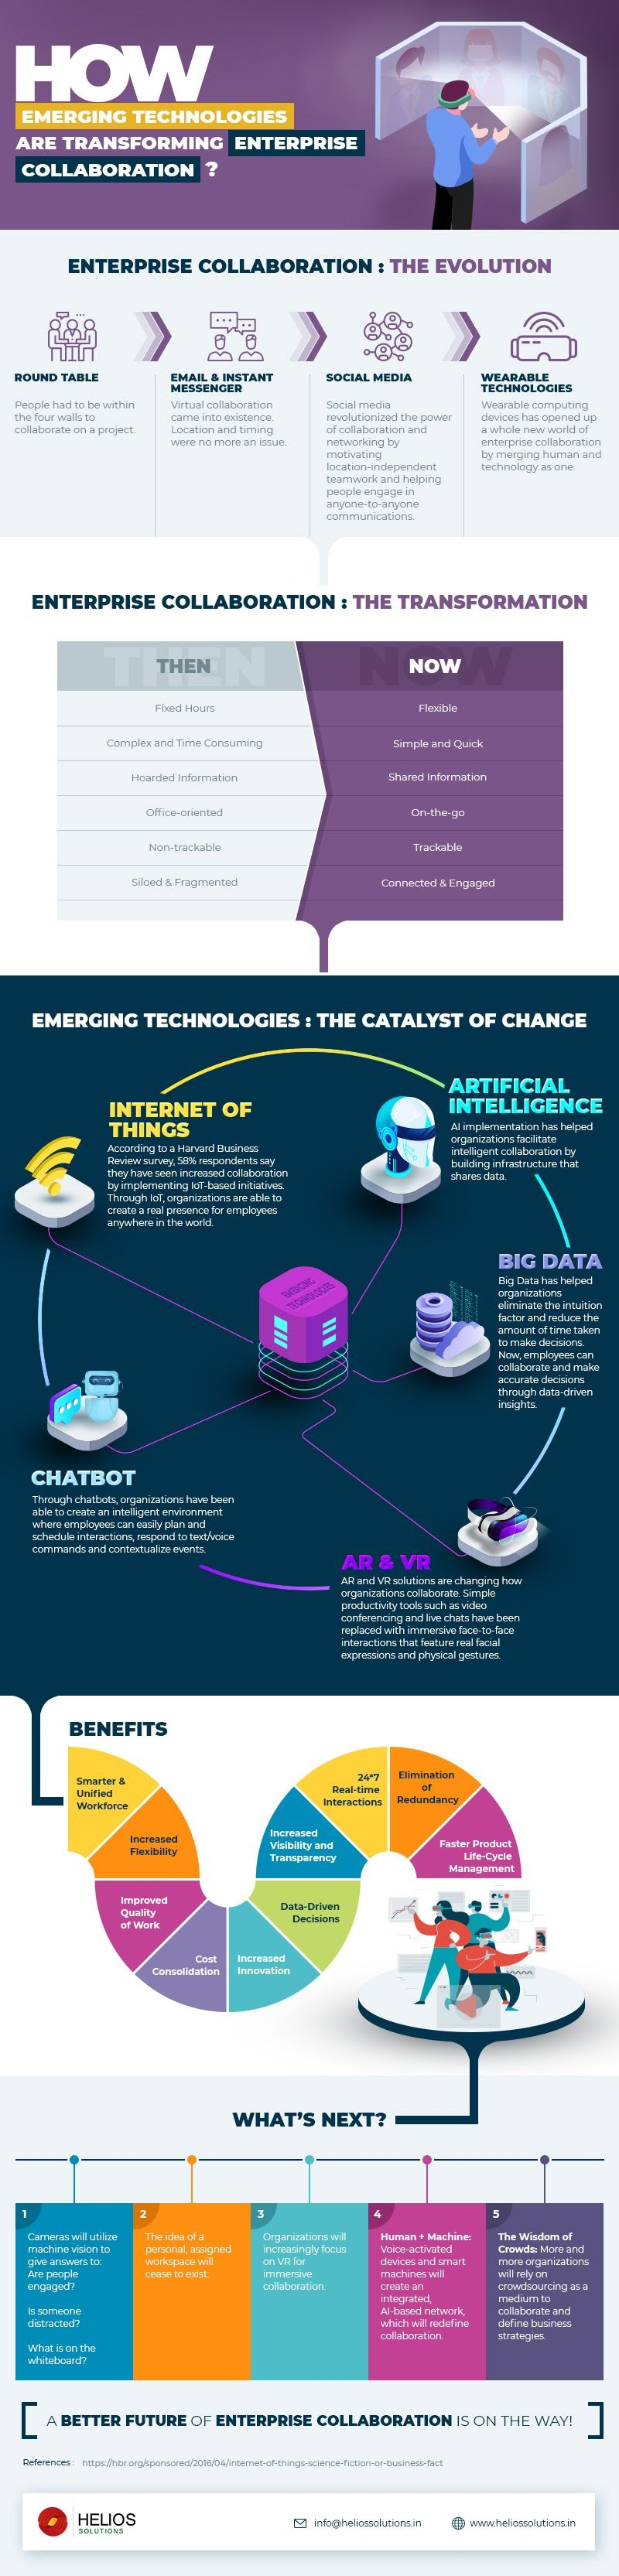 How Emerging Technologies Are Transforming Enterprise Collaboration? #infographic